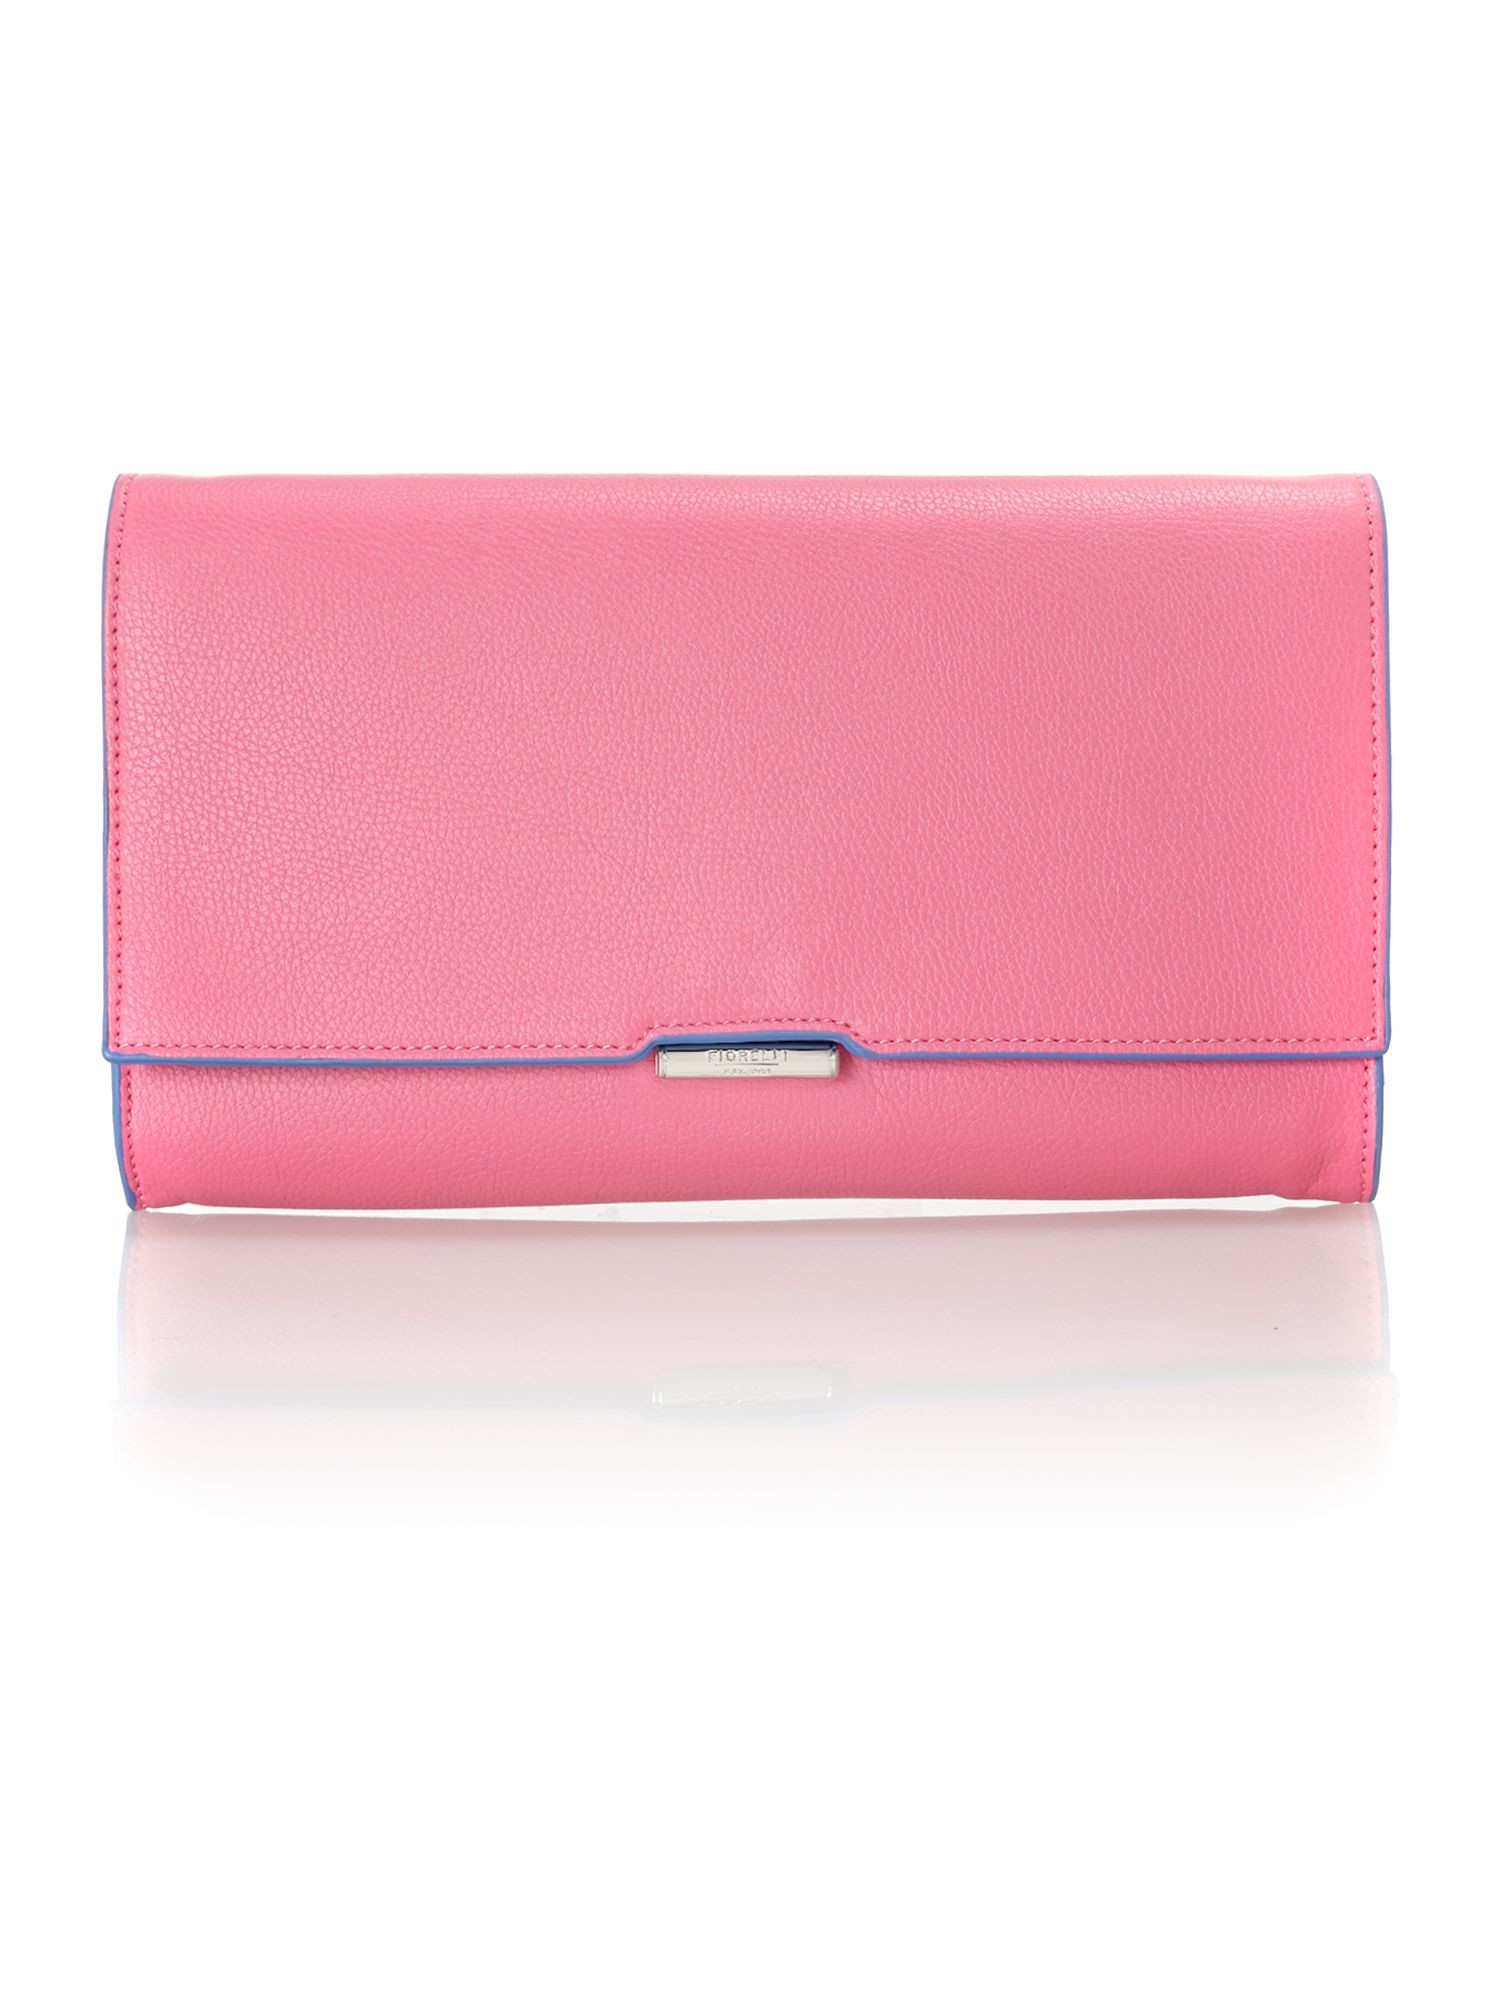 Dixie pink cross body bag